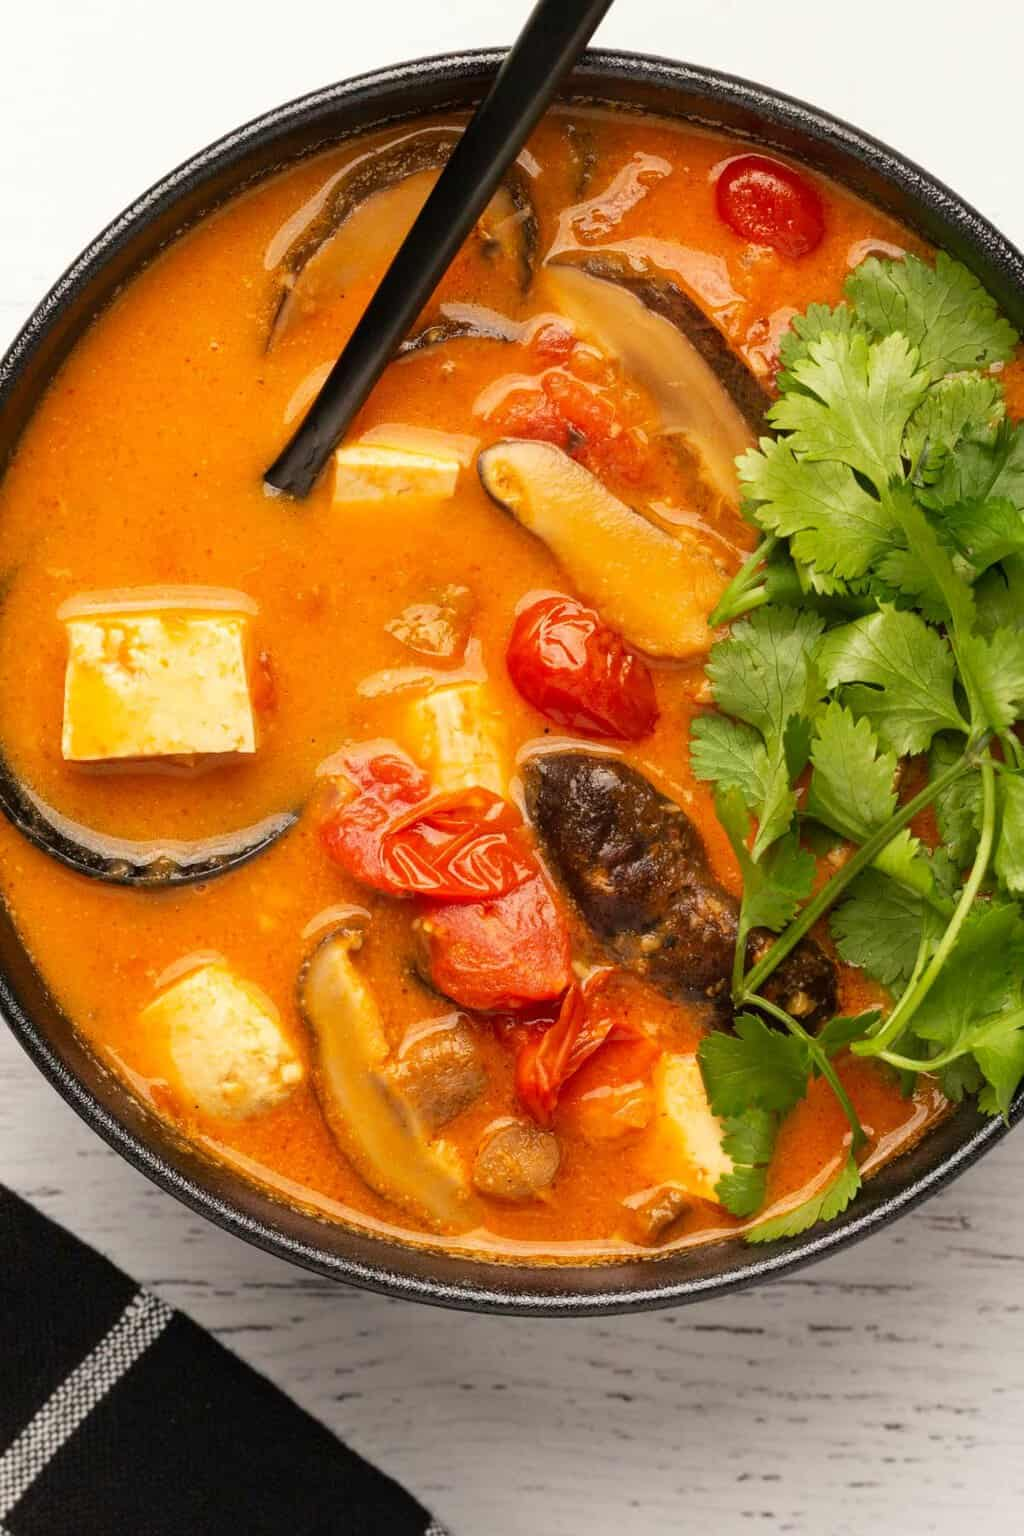 Vegan tom yum soup in a black bowl with a spoon.